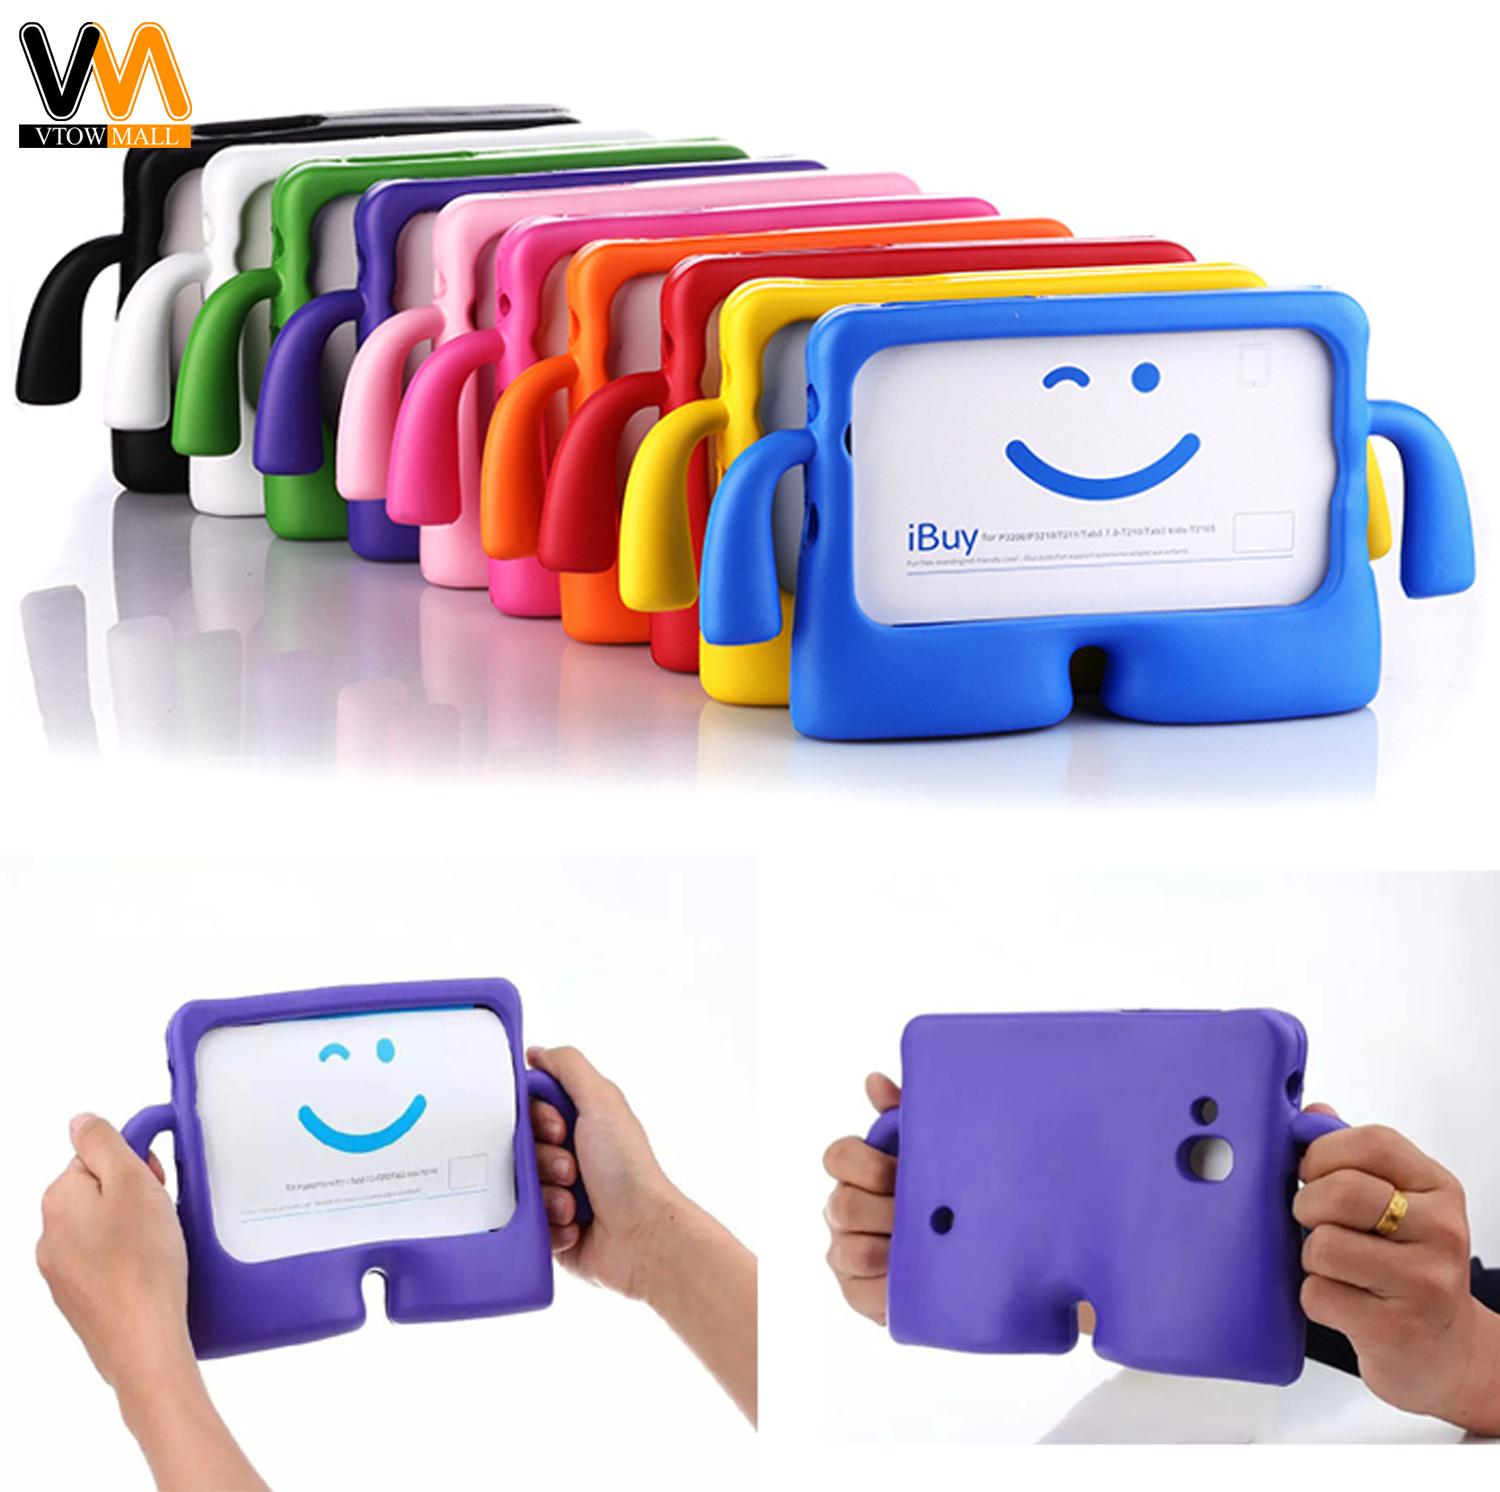 Ibuy Shockproof Rubber Protective Tablet Case By Vtow Cp Gadget.